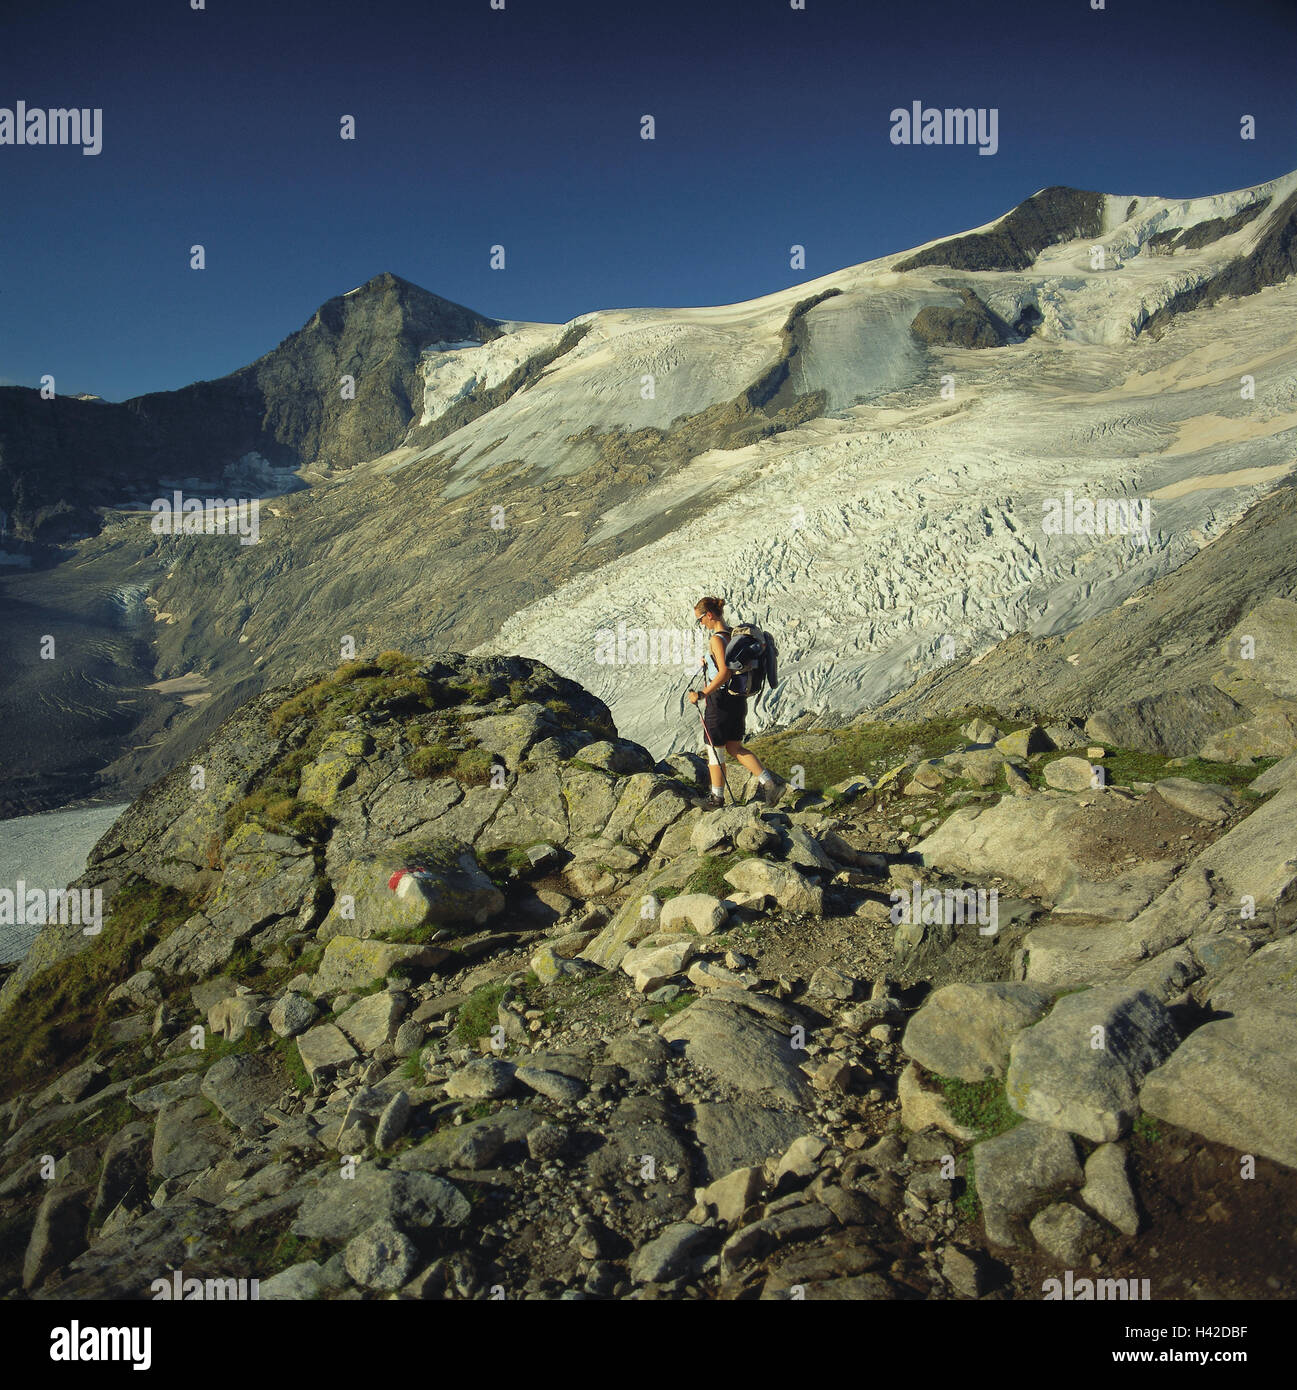 Austria, Osttirol, Matrei, Gletscherkees, traveller, mountains, mountains, scenery, mountain landscape, snow, ice, - Stock Image